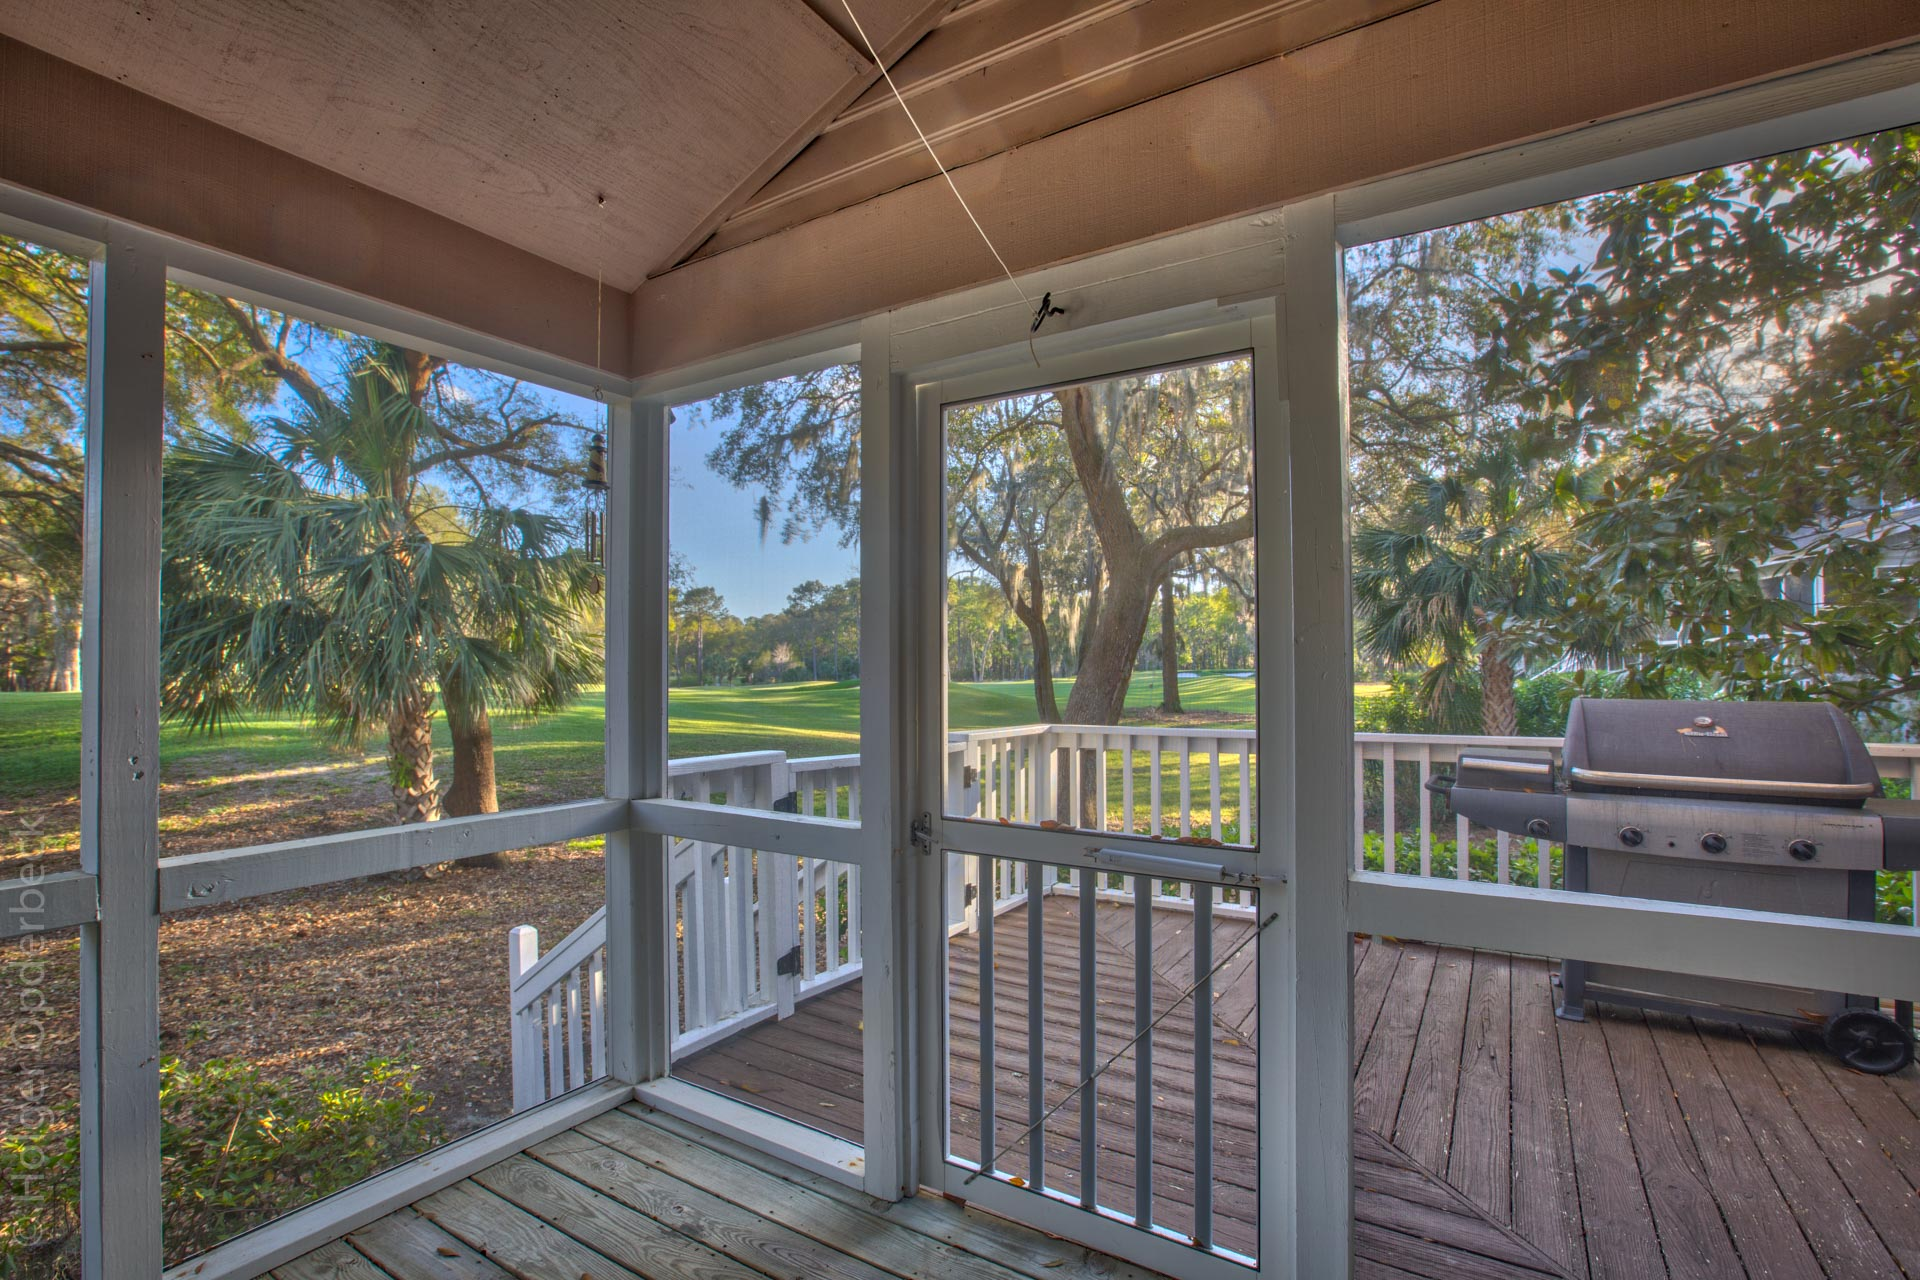 porch-view-P.jpg